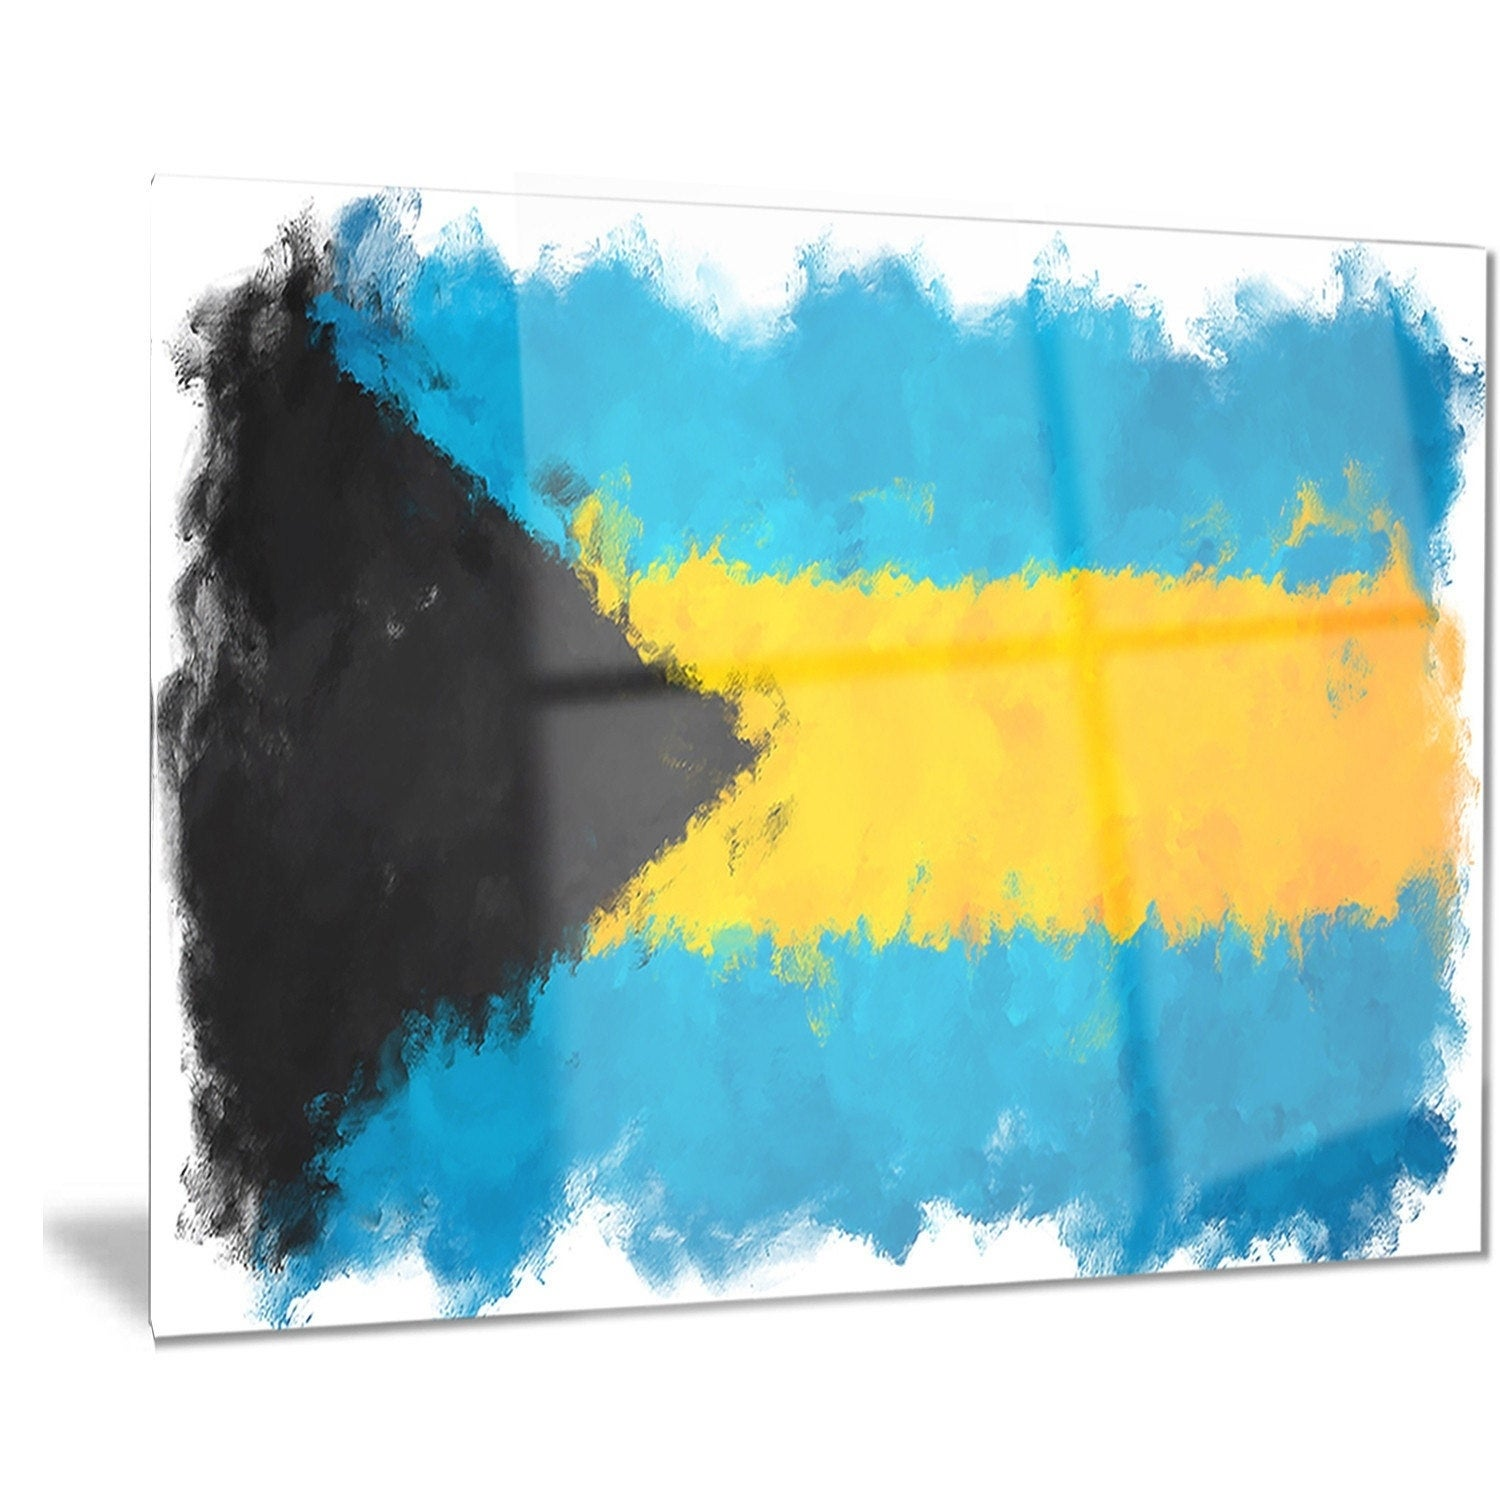 Luxury Metal Paintings Wall Art Elaboration - Wall Art Collections ...